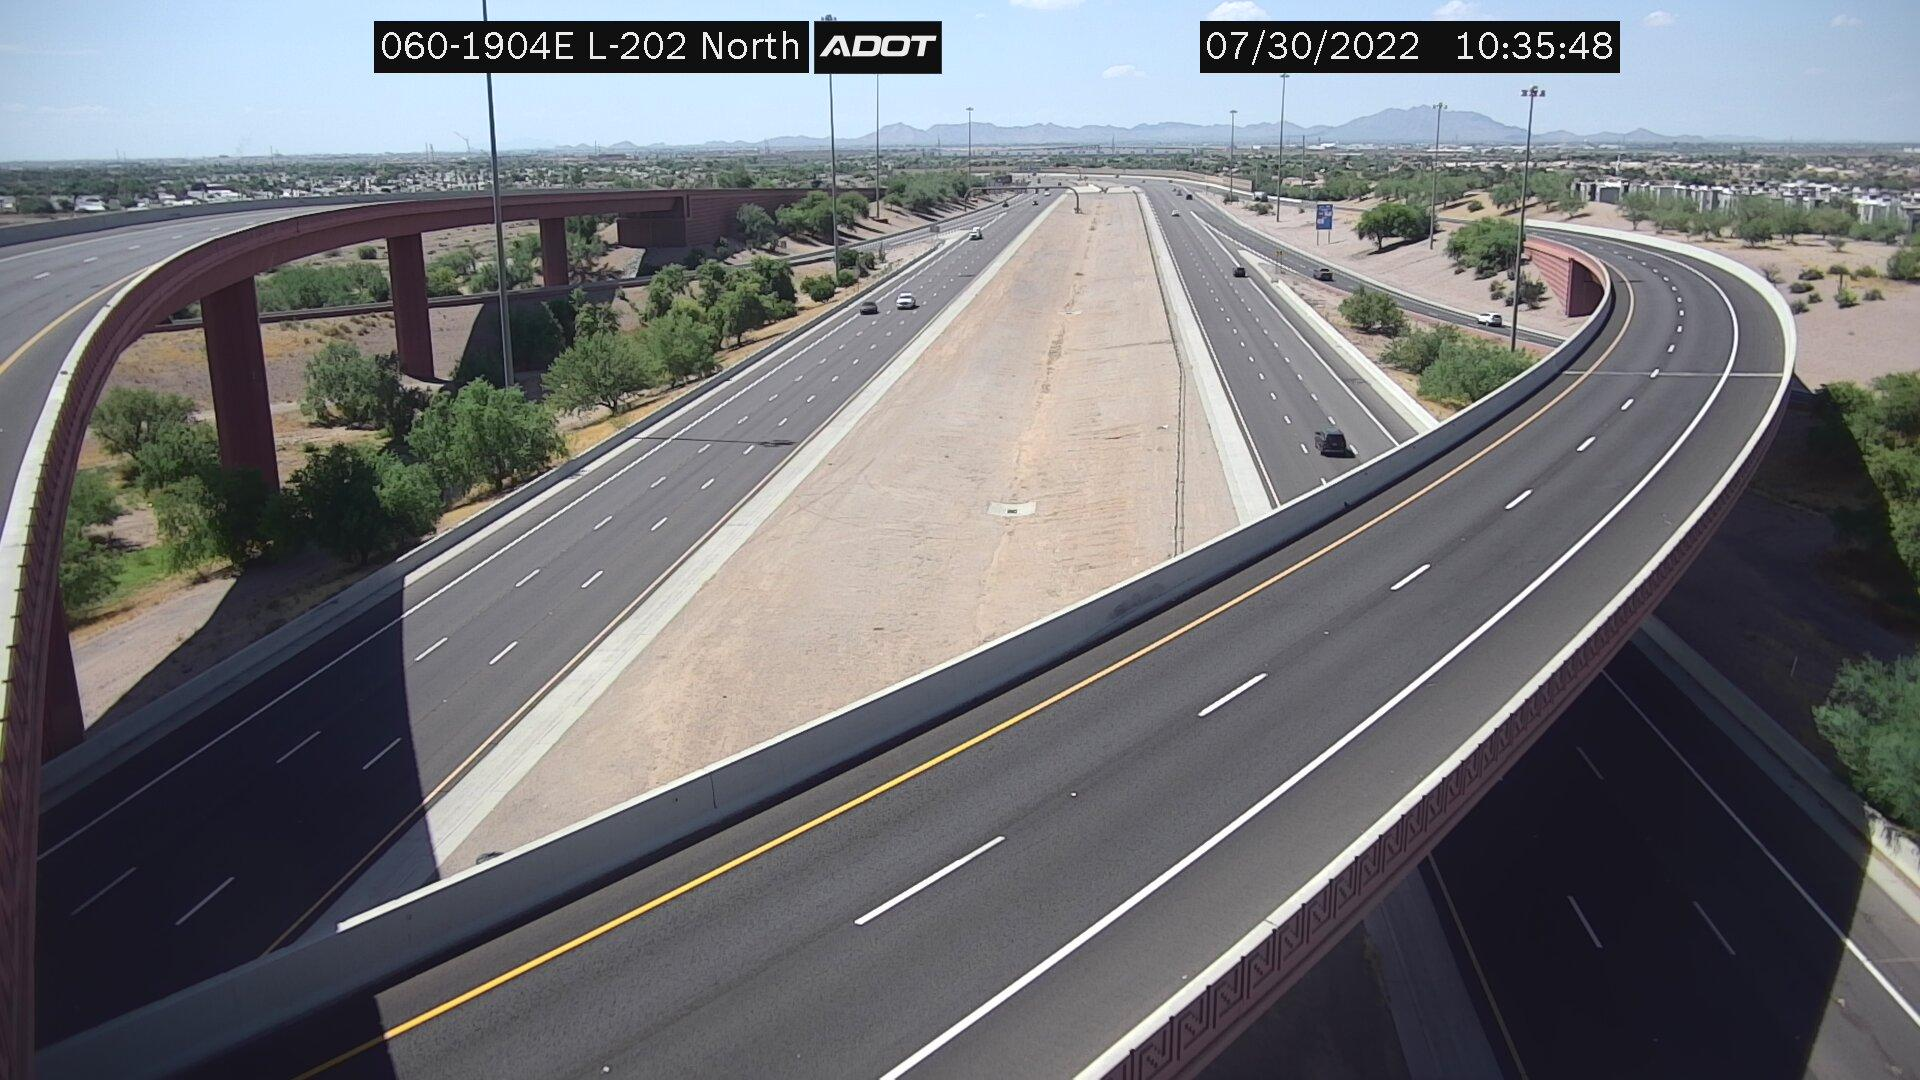 Webcam Fountain of the Sun: US 60 Loop 202 N